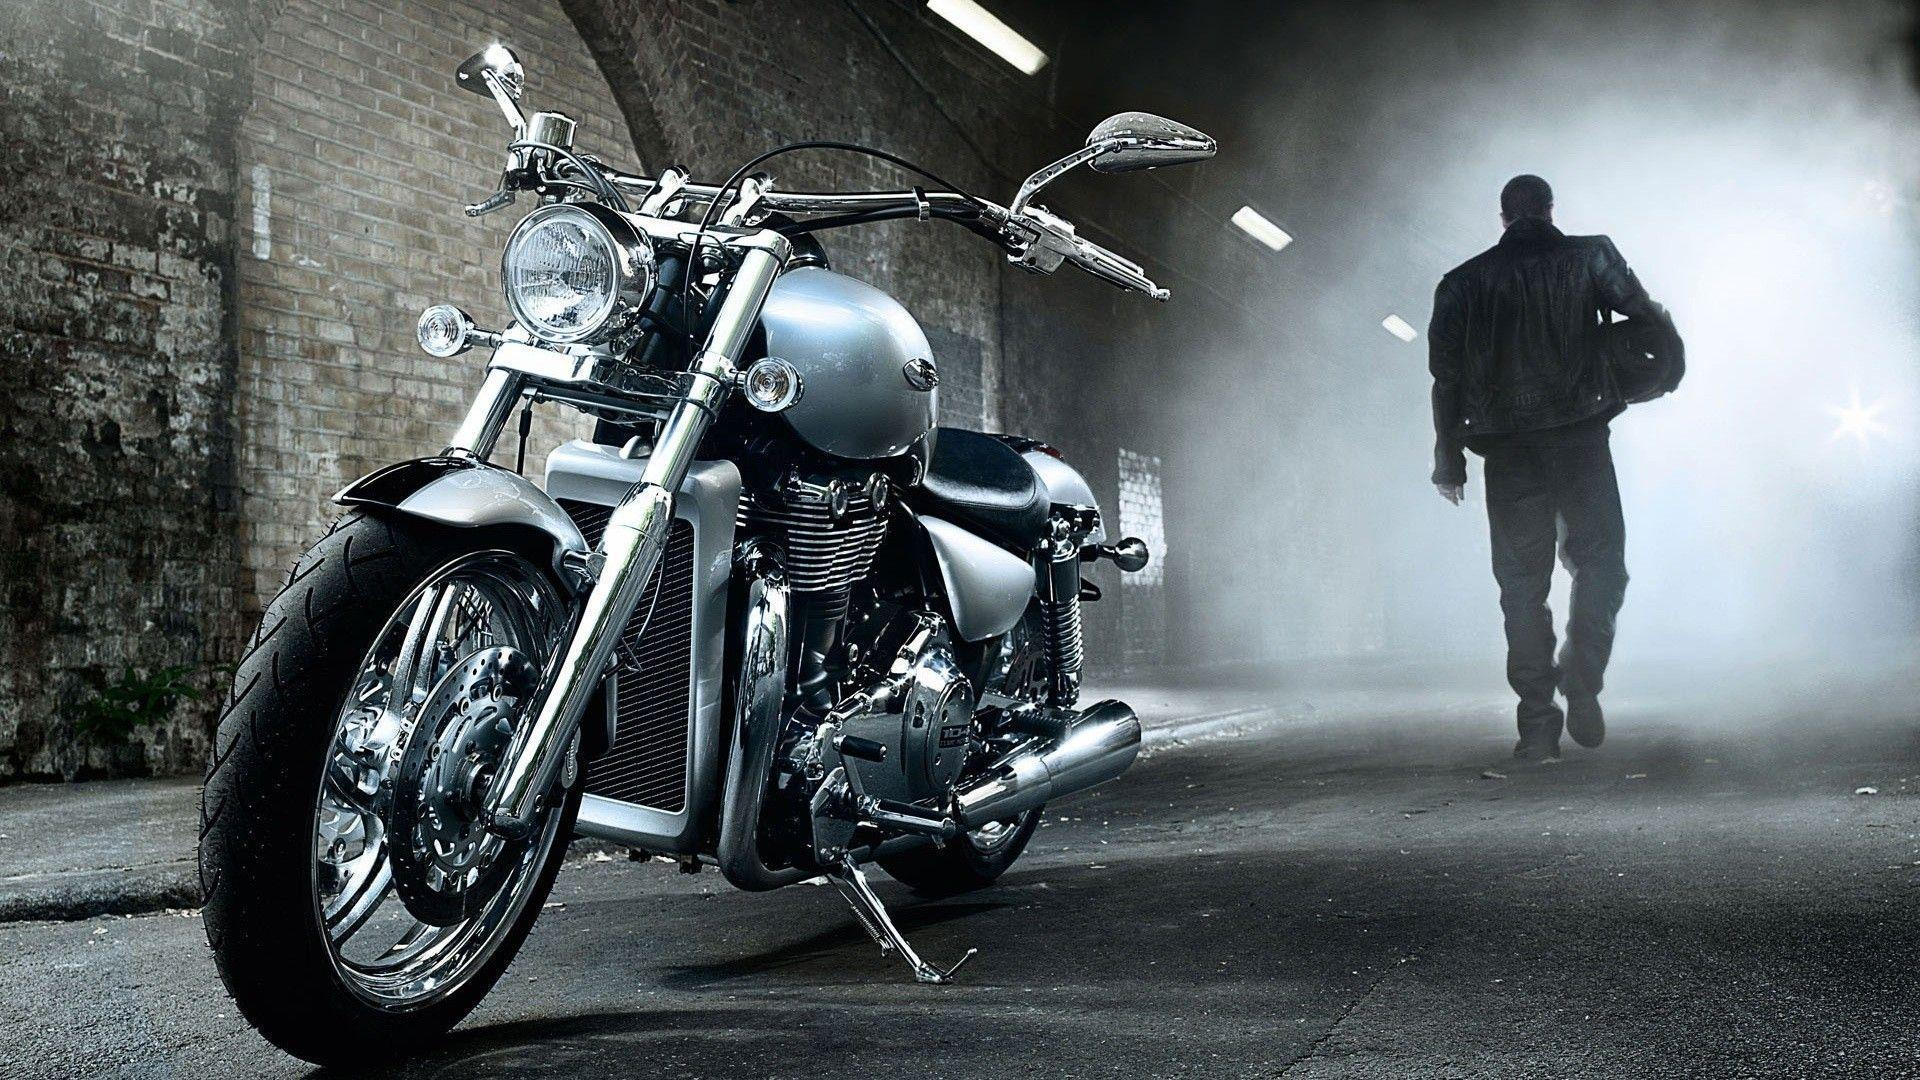 Harley Davidson Wallpapers